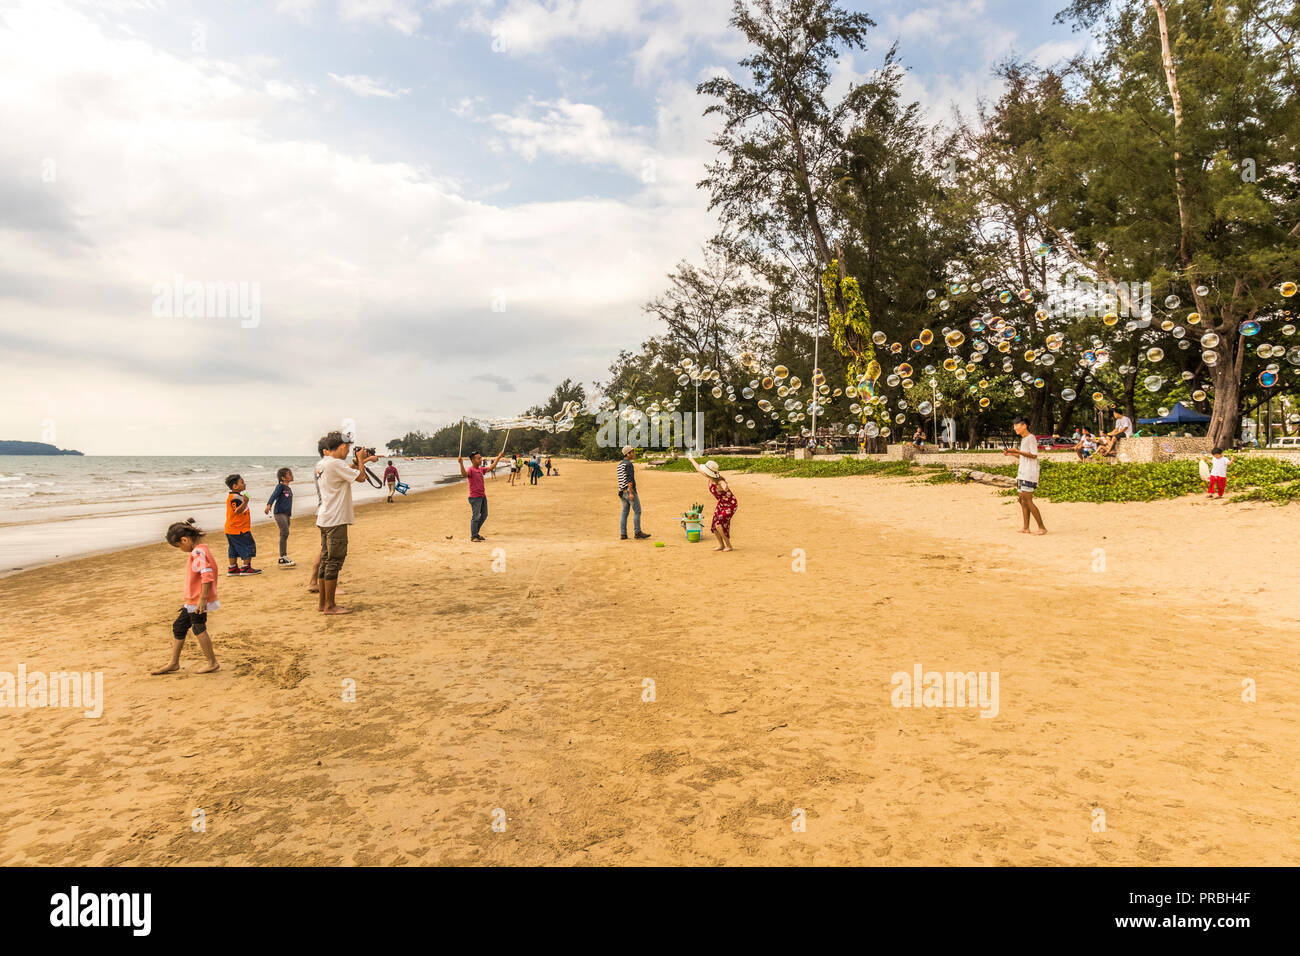 Visitors playing with soap bubbles while enjoying a day on Tanjung Aru Beach Kota Kinabalu Sabah Malaysia Borneo - Stock Image